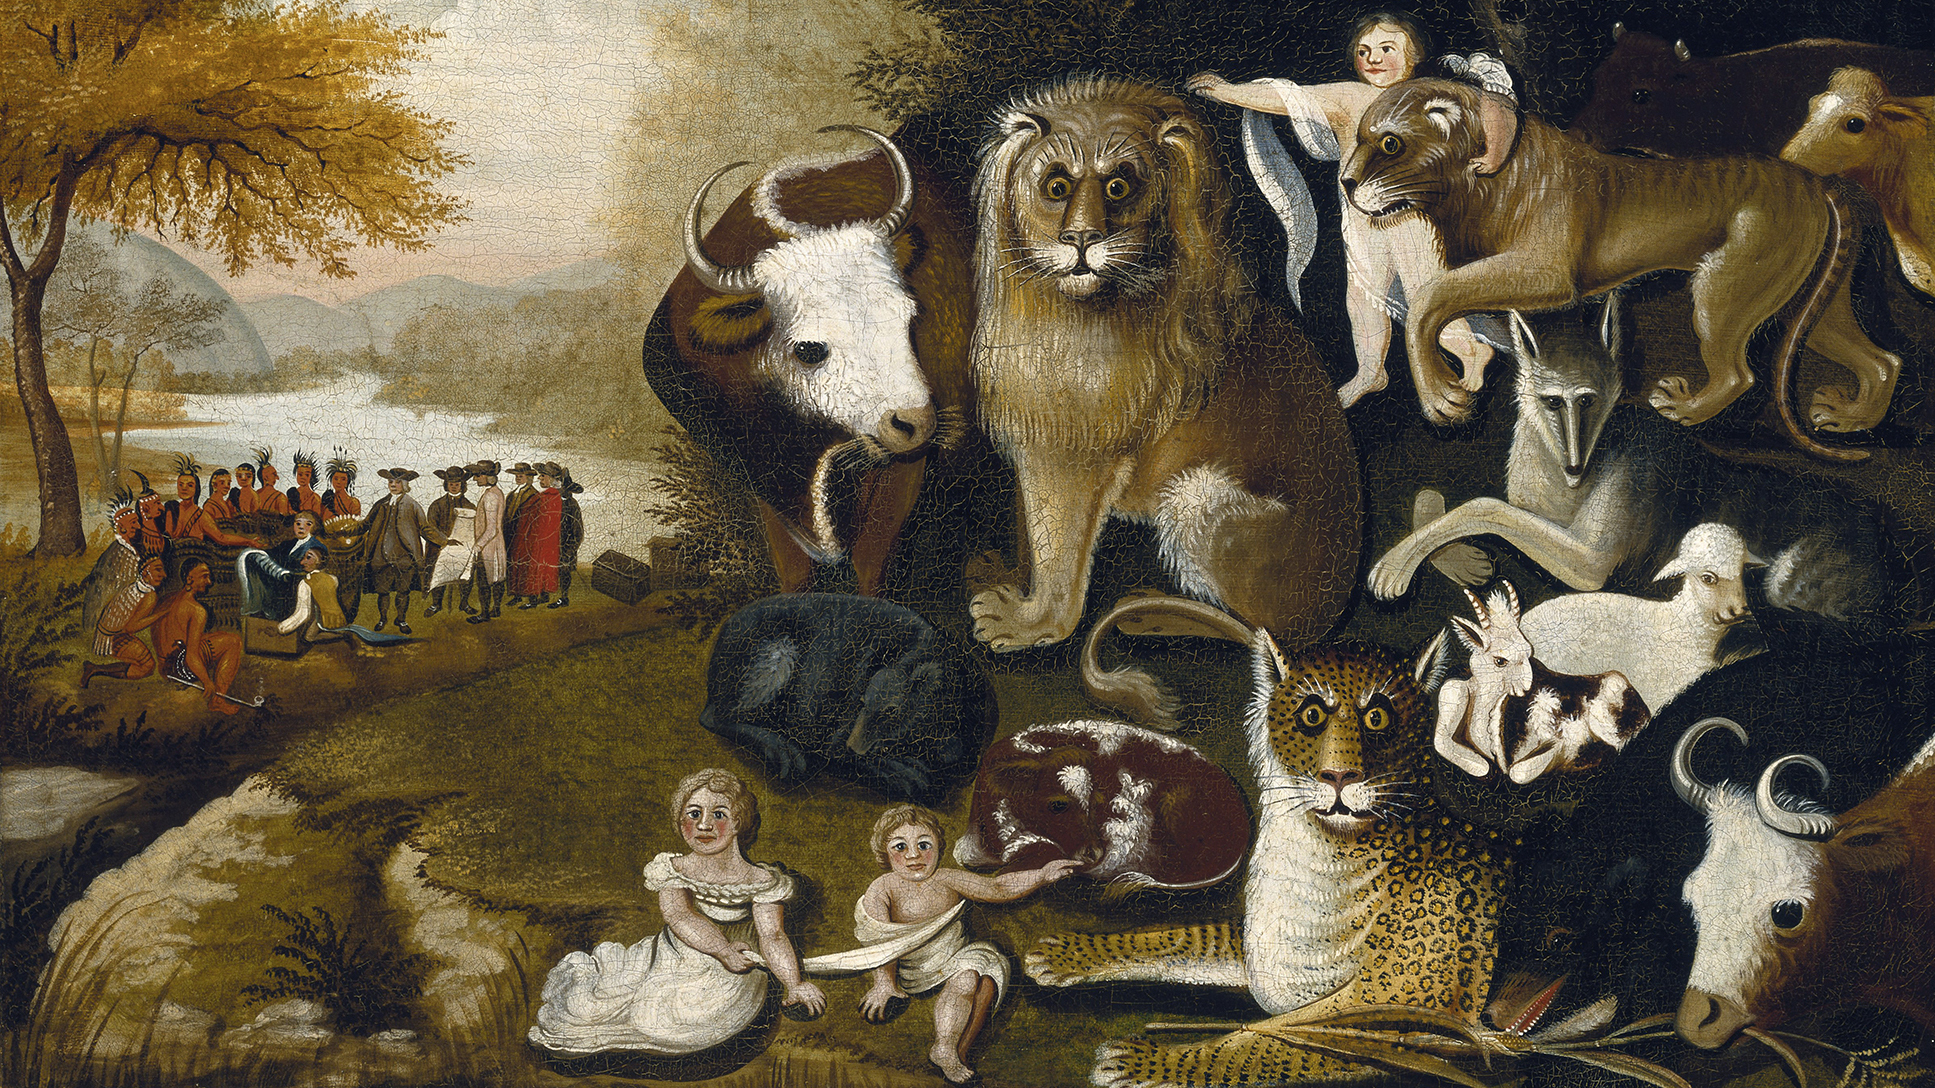 A Peaceable Kingdom (1833–34), Edward Hicks